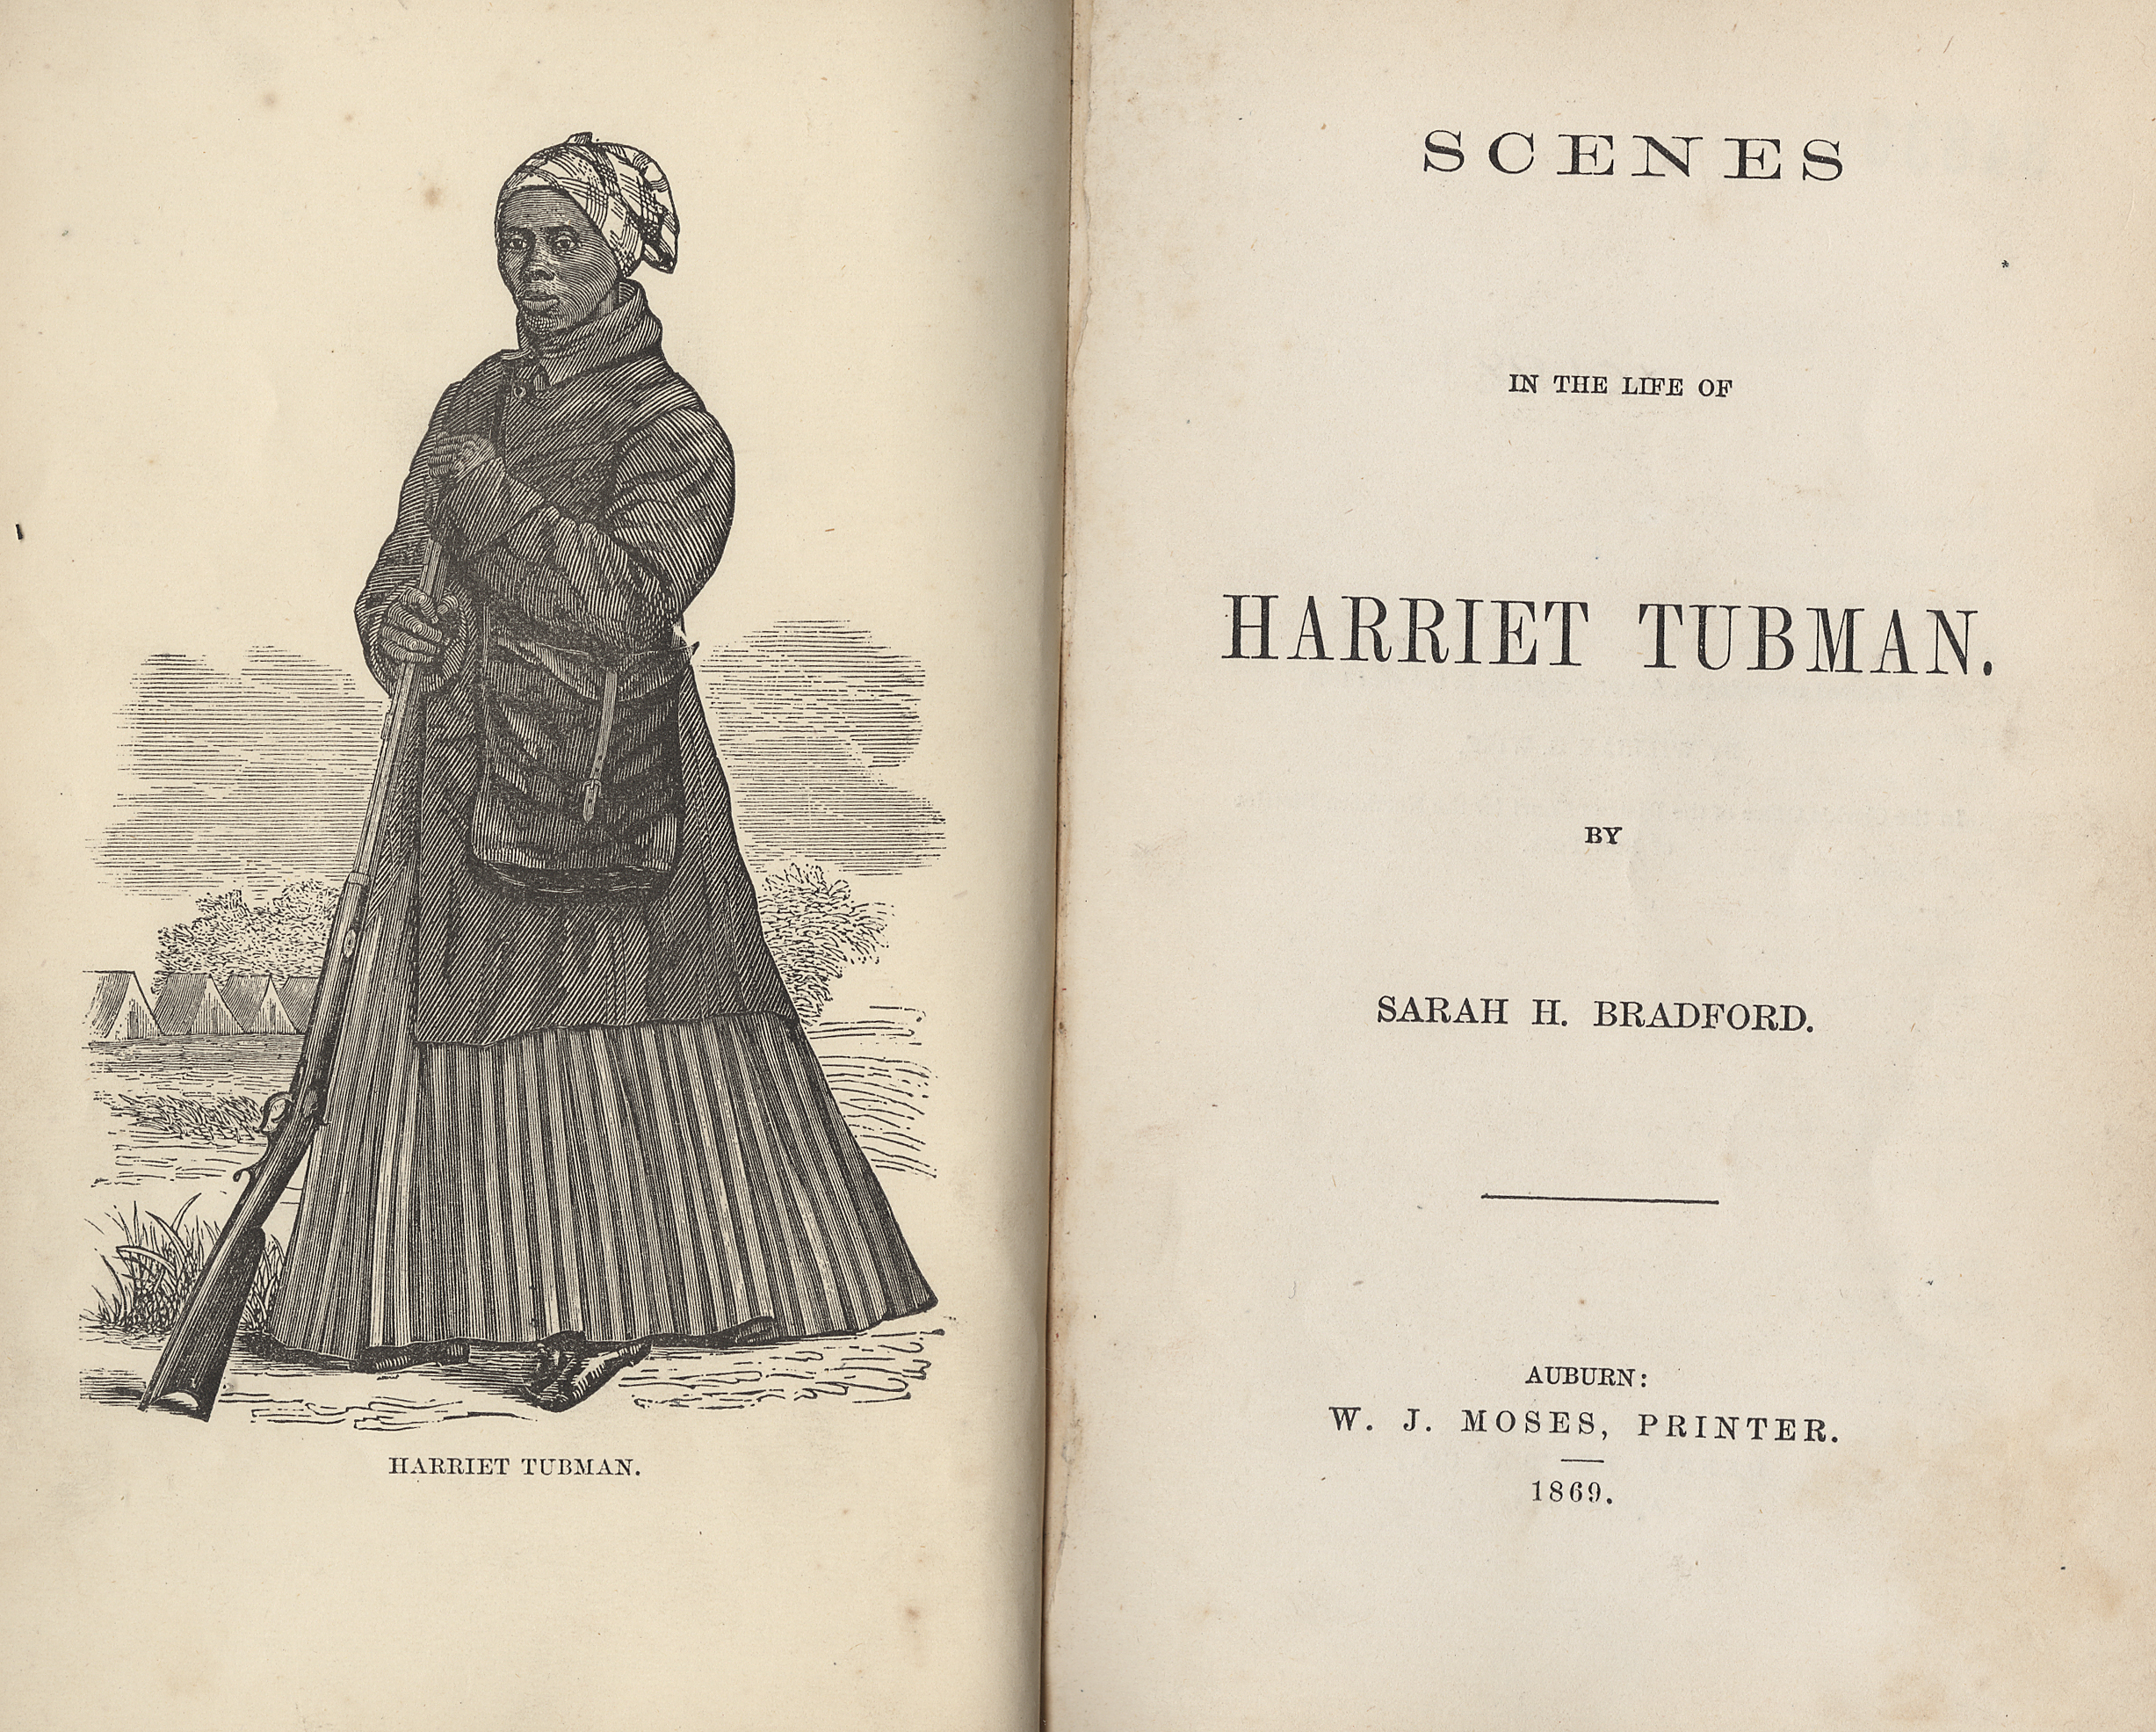 harriet tubman research paper Essays, term papers, book reports, research papers on literature: civil war free papers and essays on harriet tubman we provide free model essays on literature.